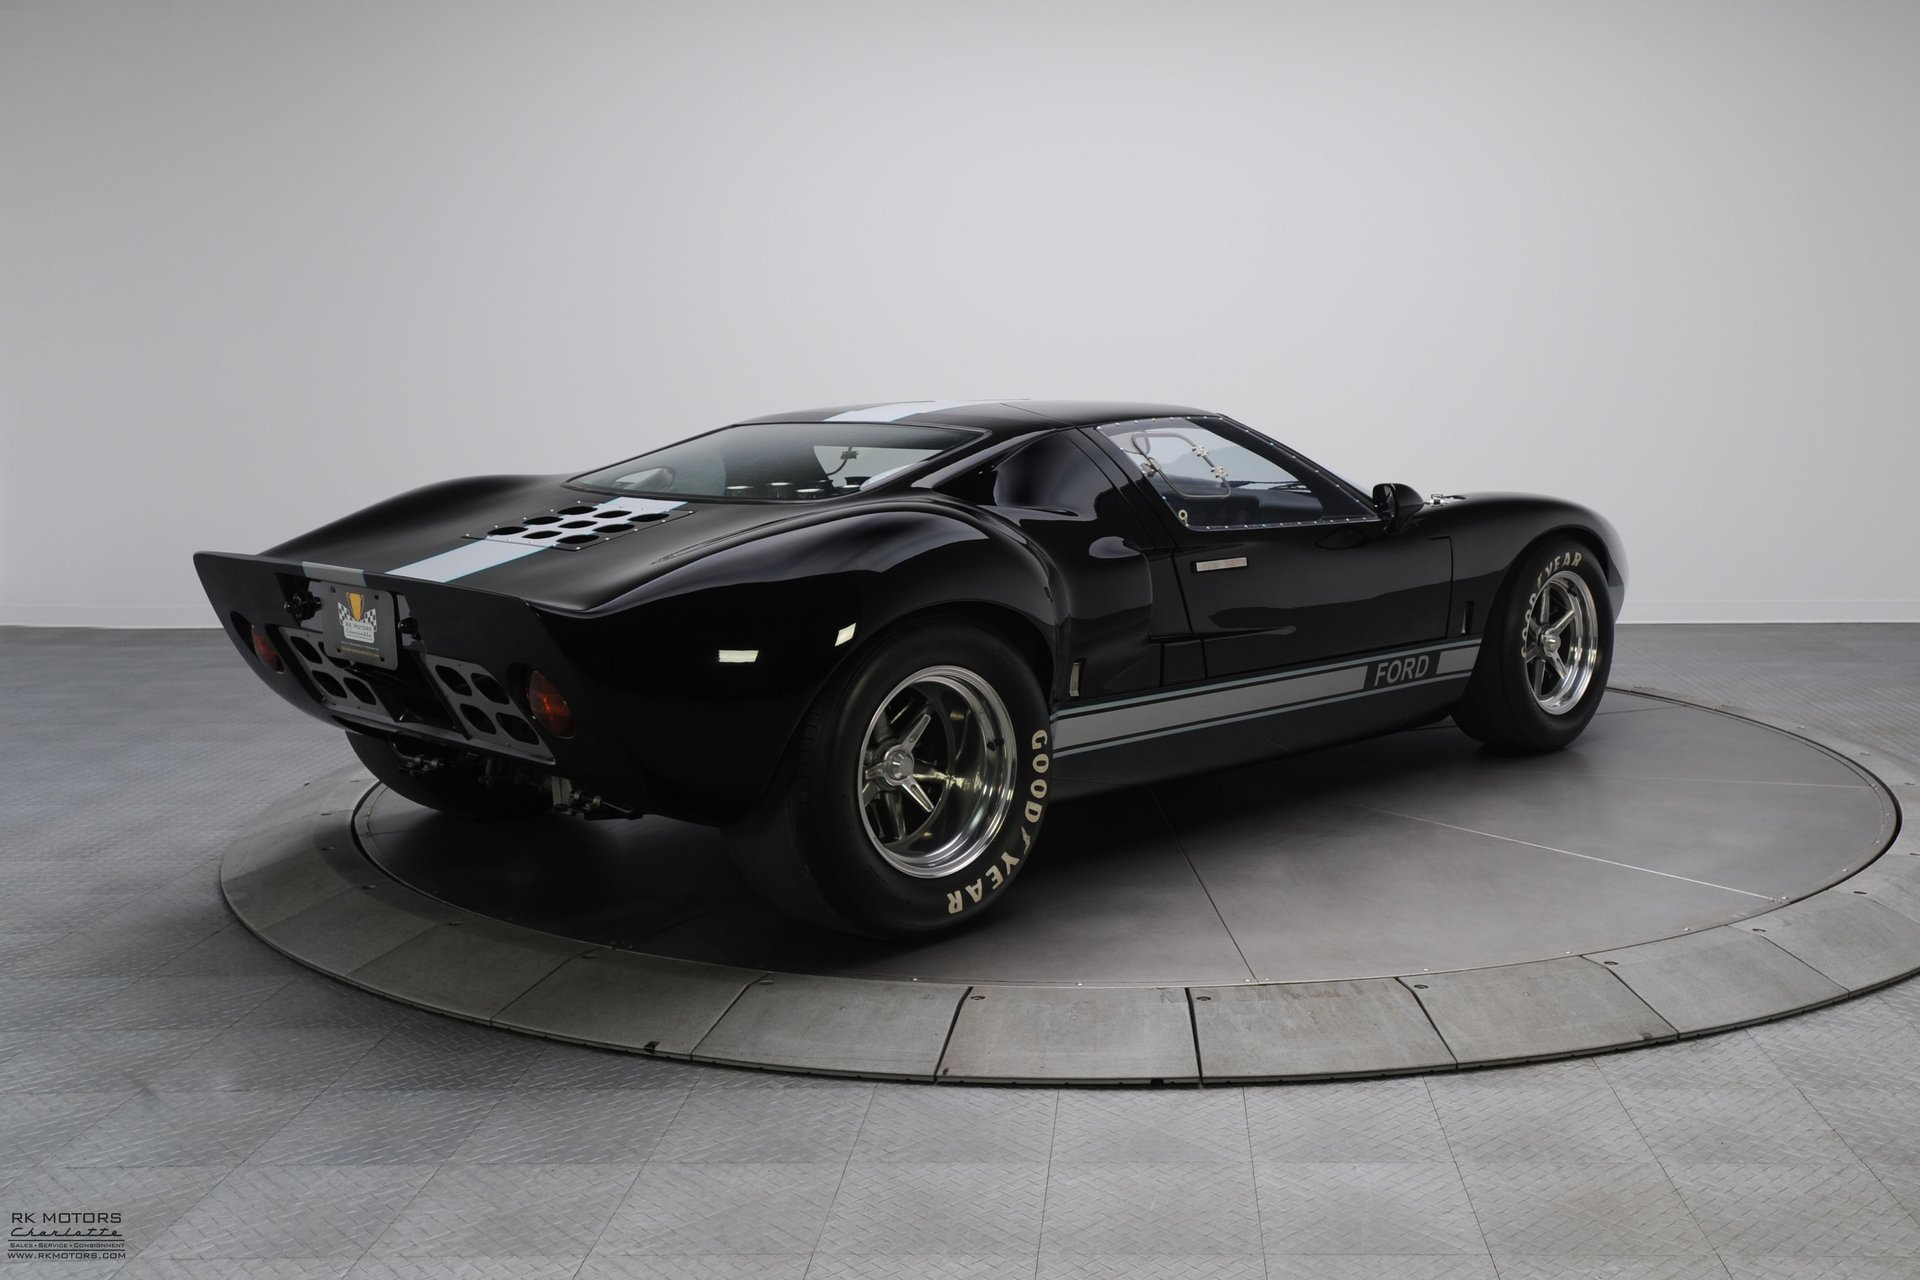 133368 1966 Ford GT40 RK Motors Classic Cars for Sale